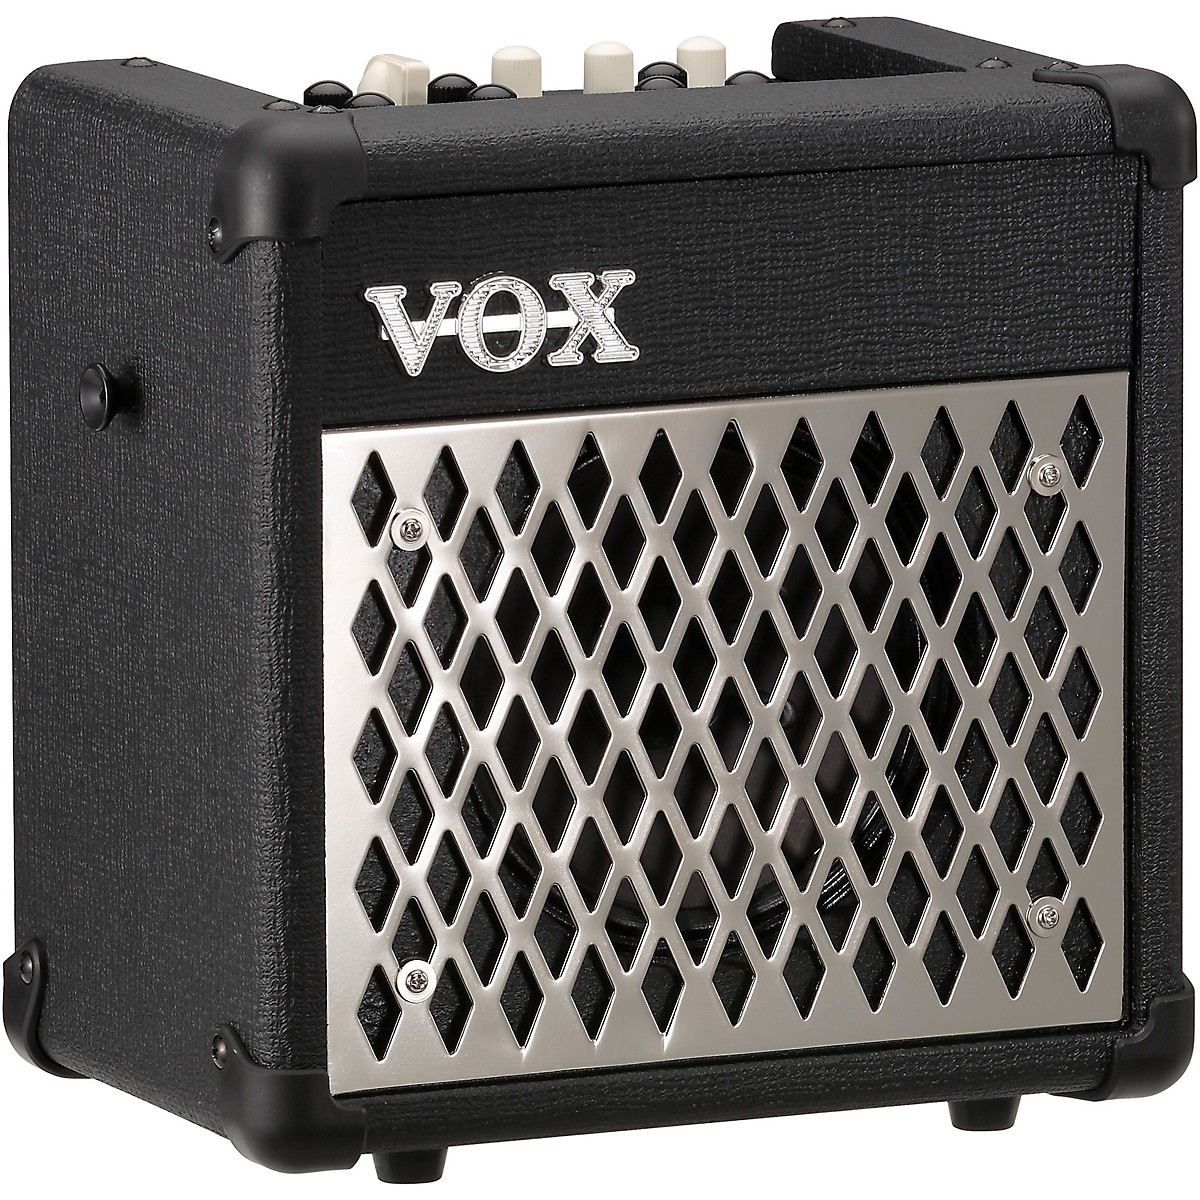 Vox Mini 5 Battery Powered Amplifier